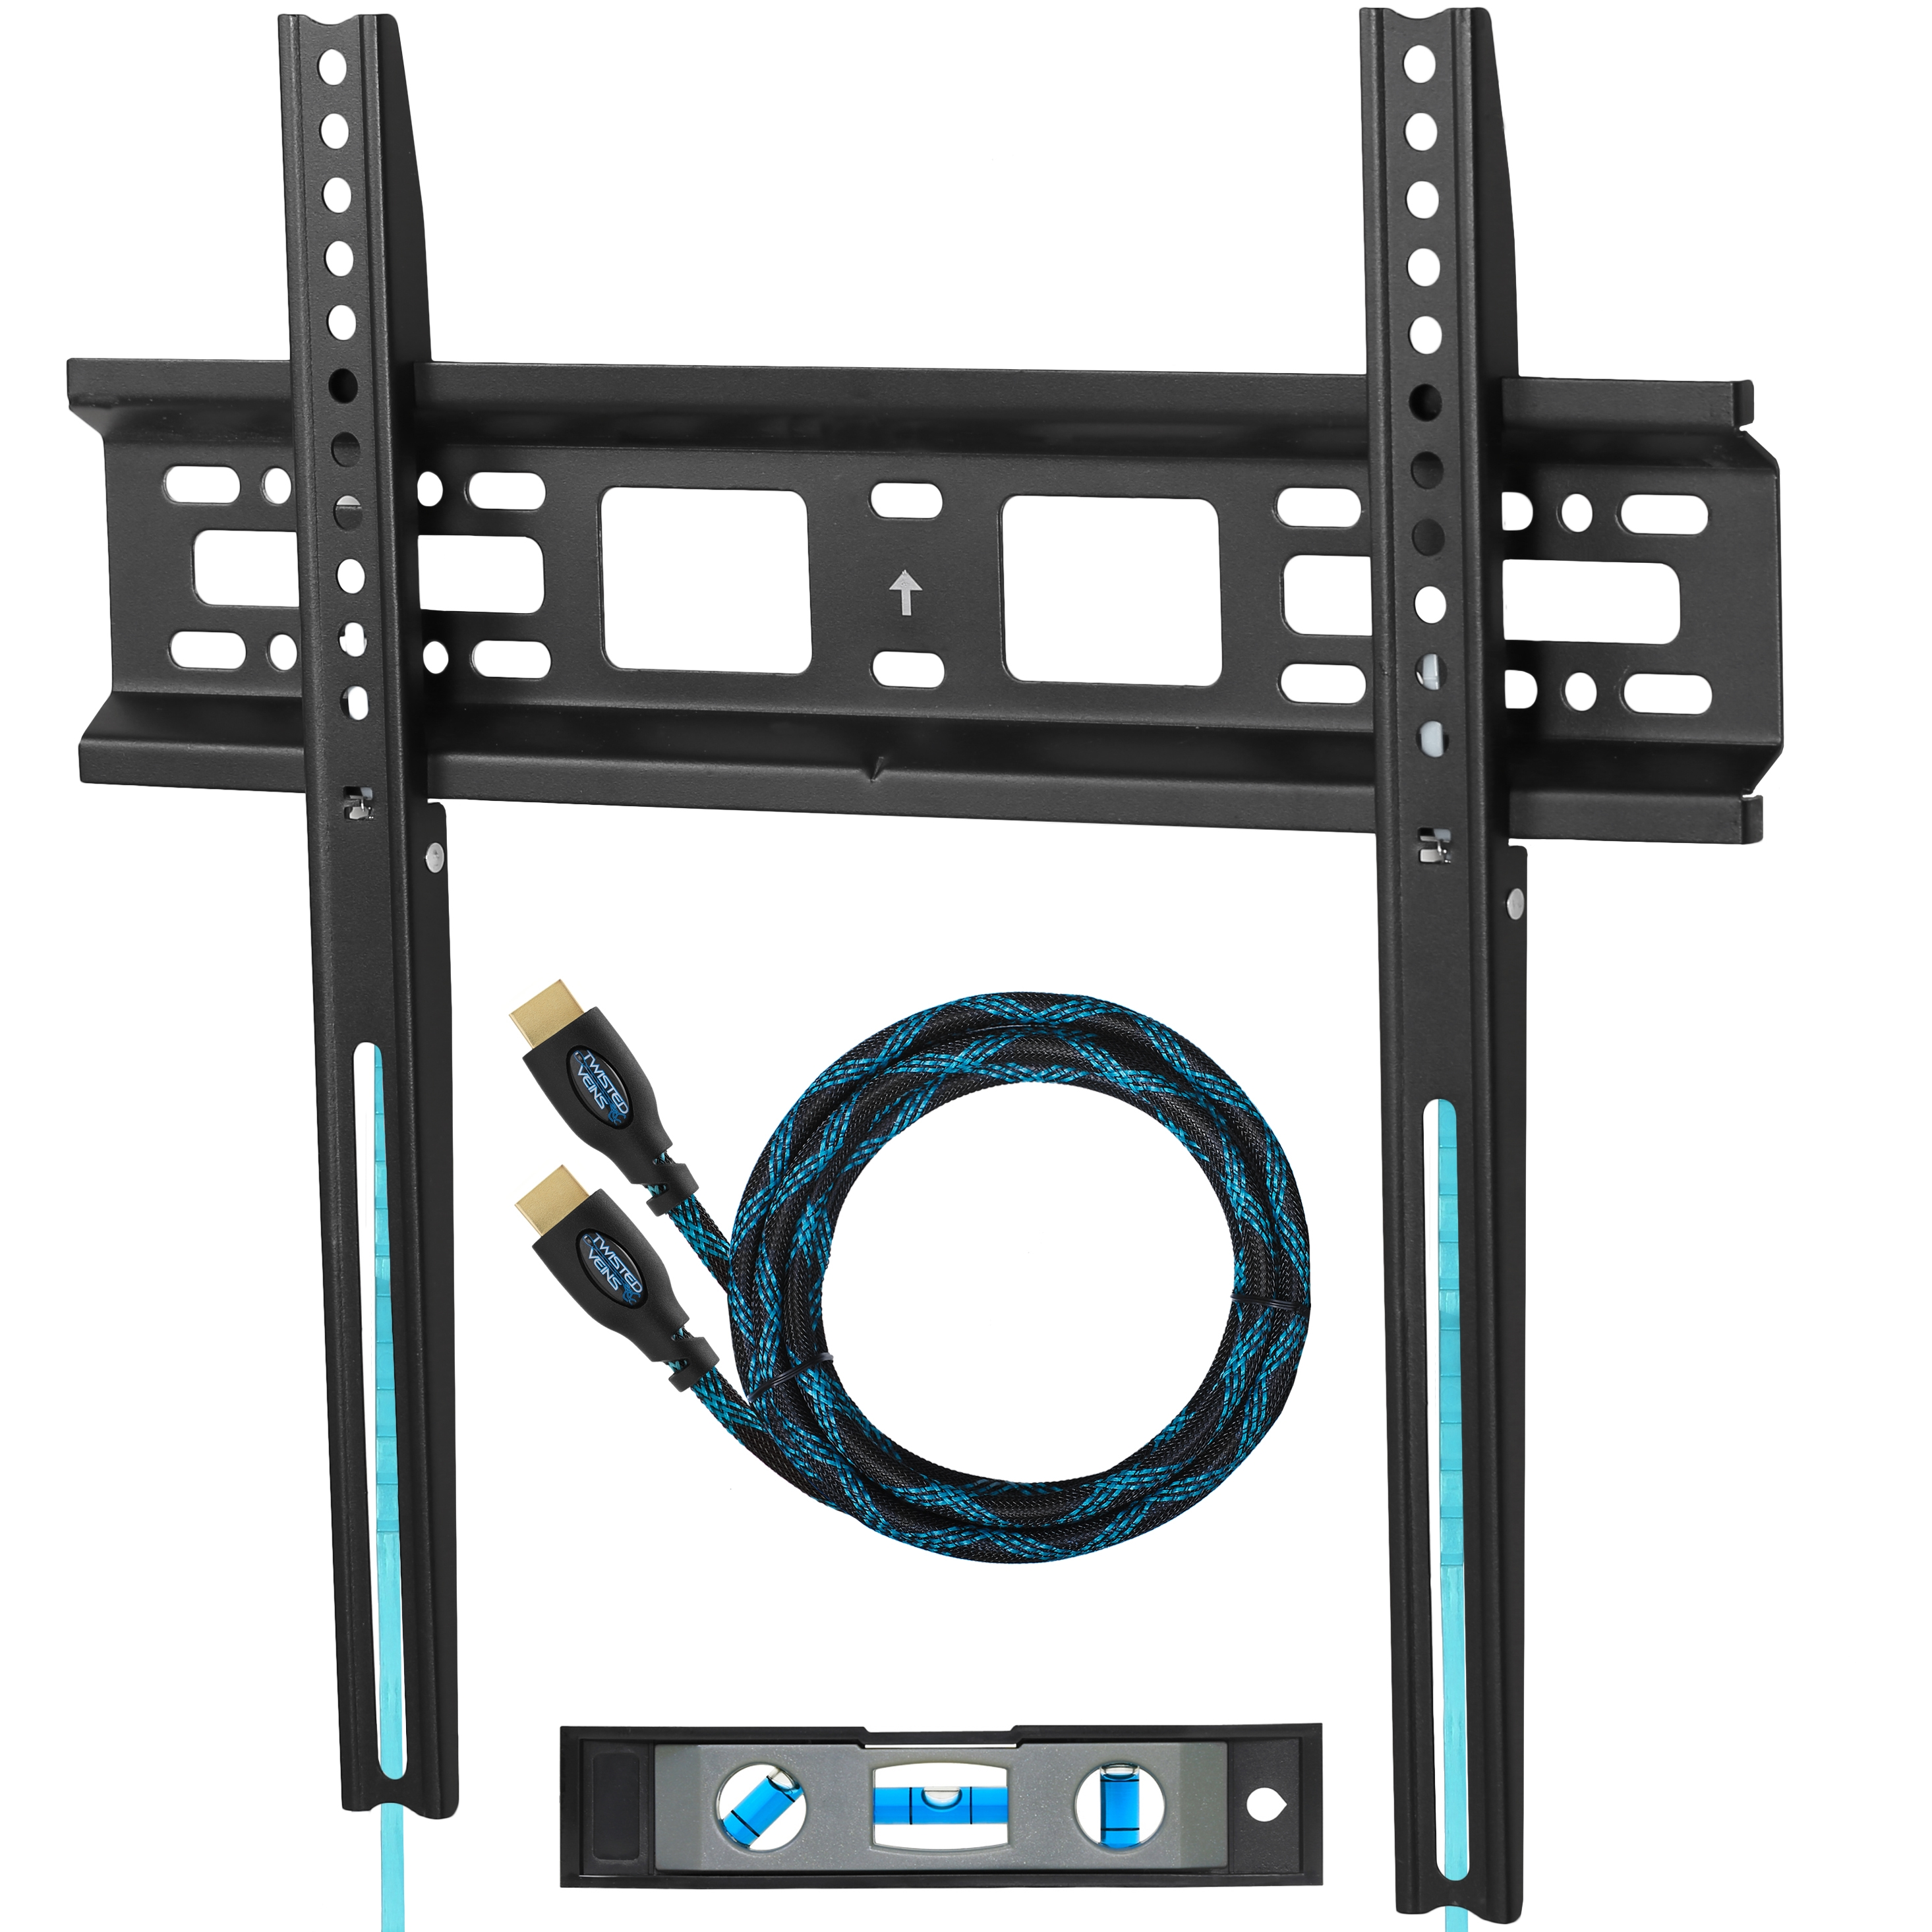 Cheetah Mounts Apfmsb Tv Wall Mount Bracket For 20 55 Tvs Up To Vesa 400 And